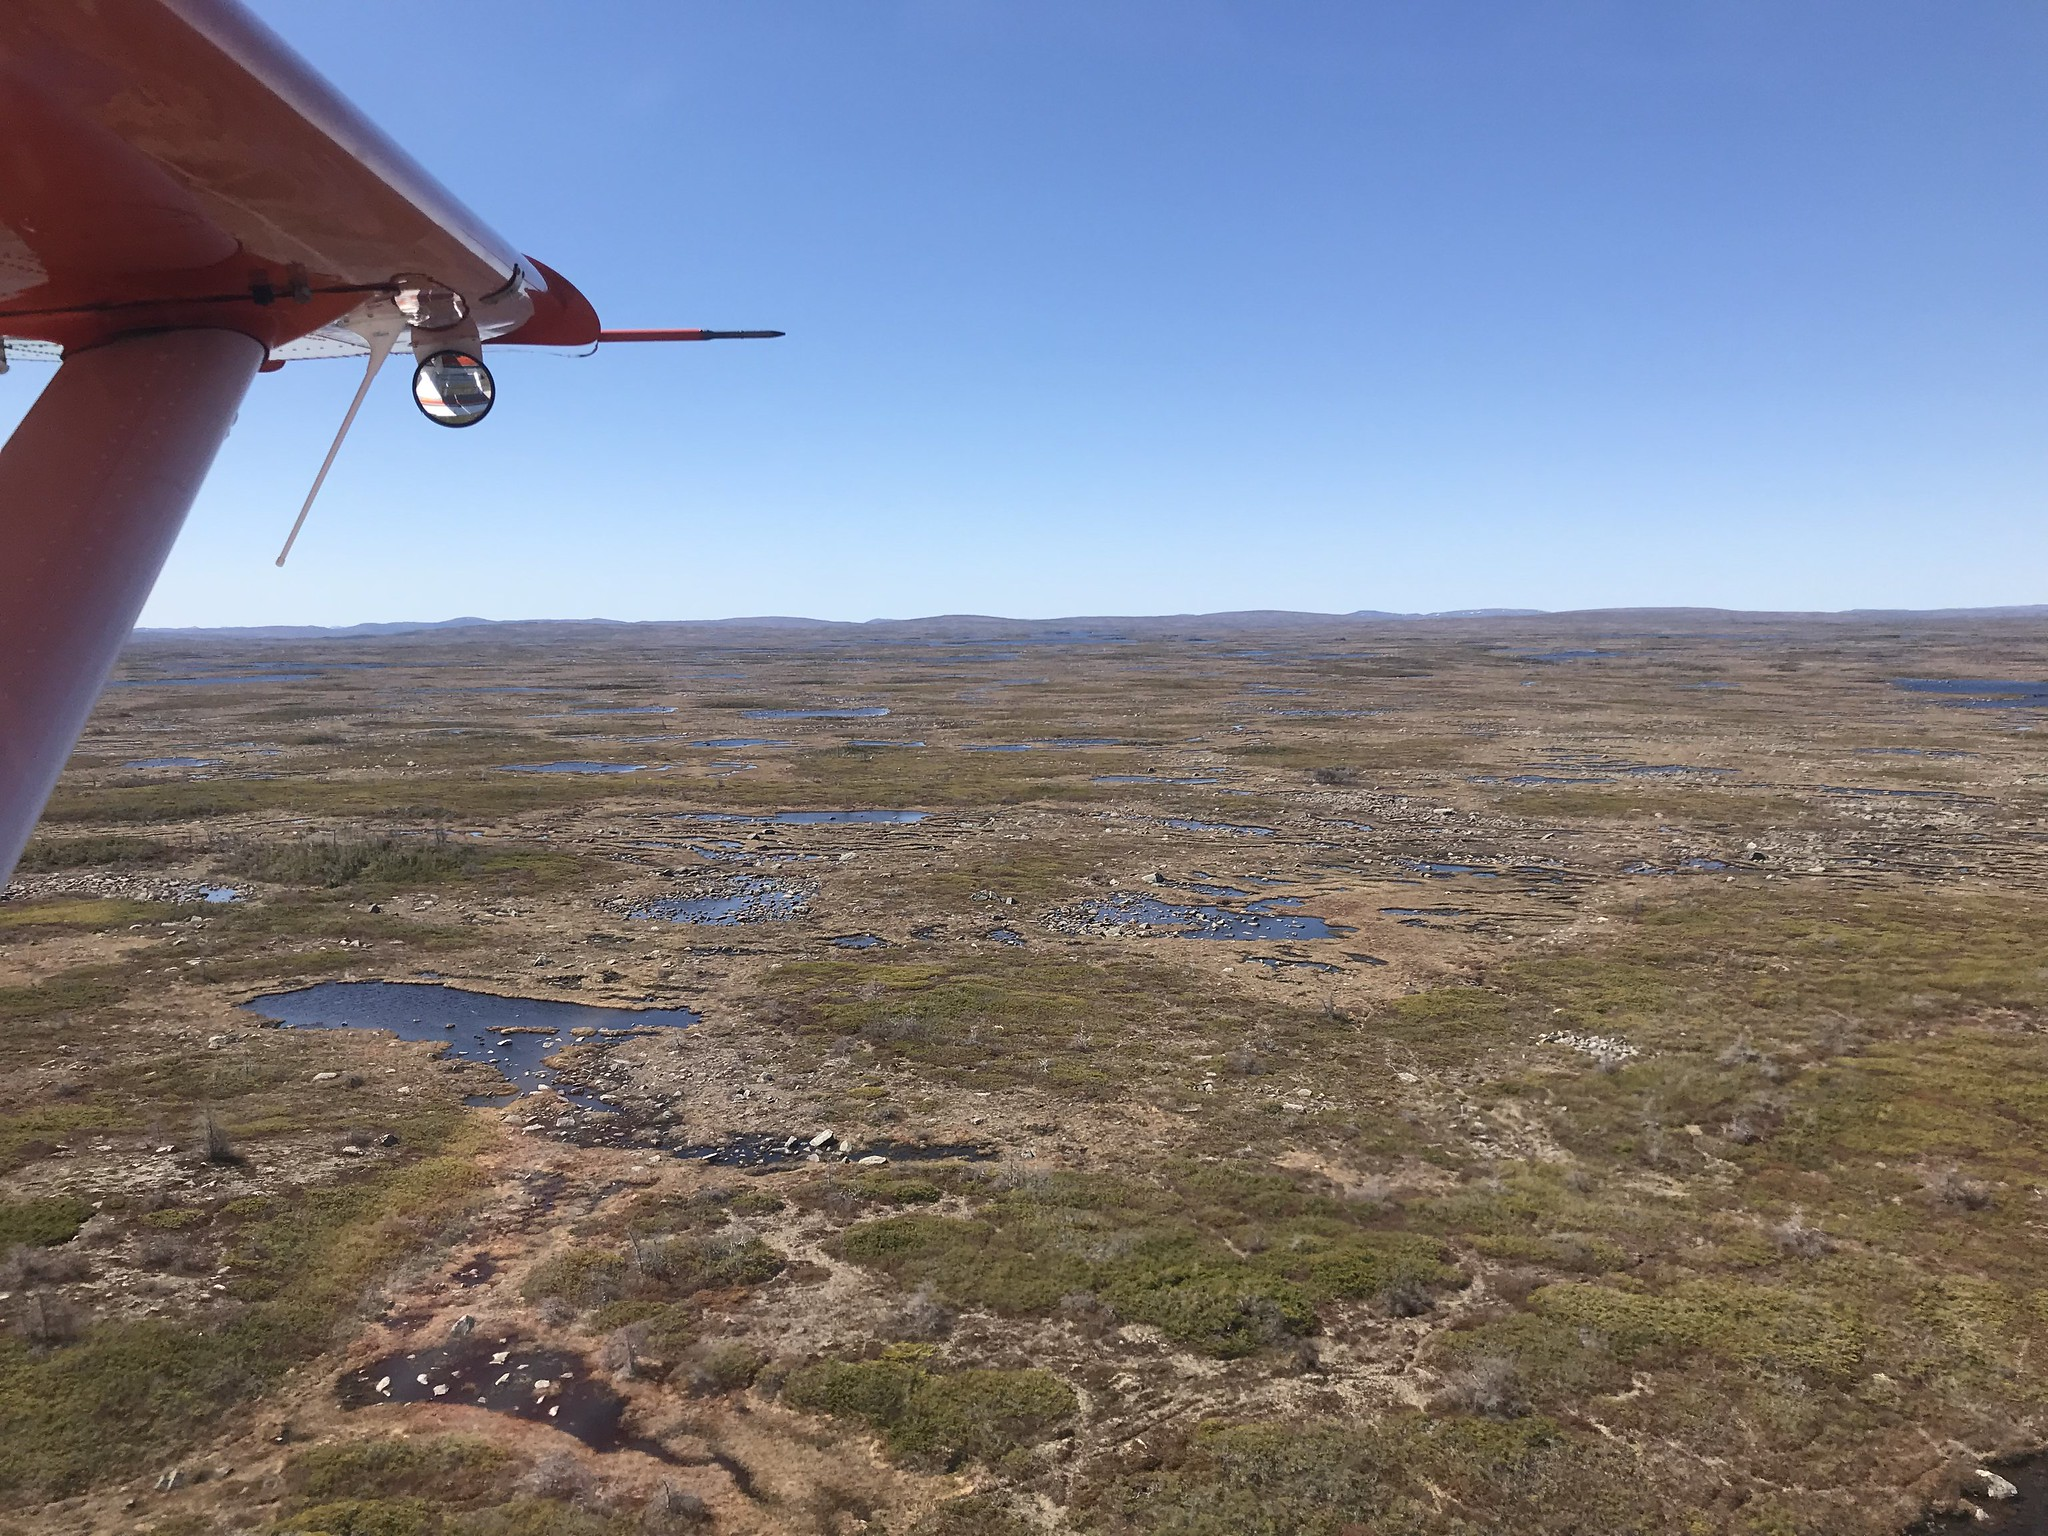 Tablelands of interior Newfoundland, May 2018 Photo Credit: USFWS